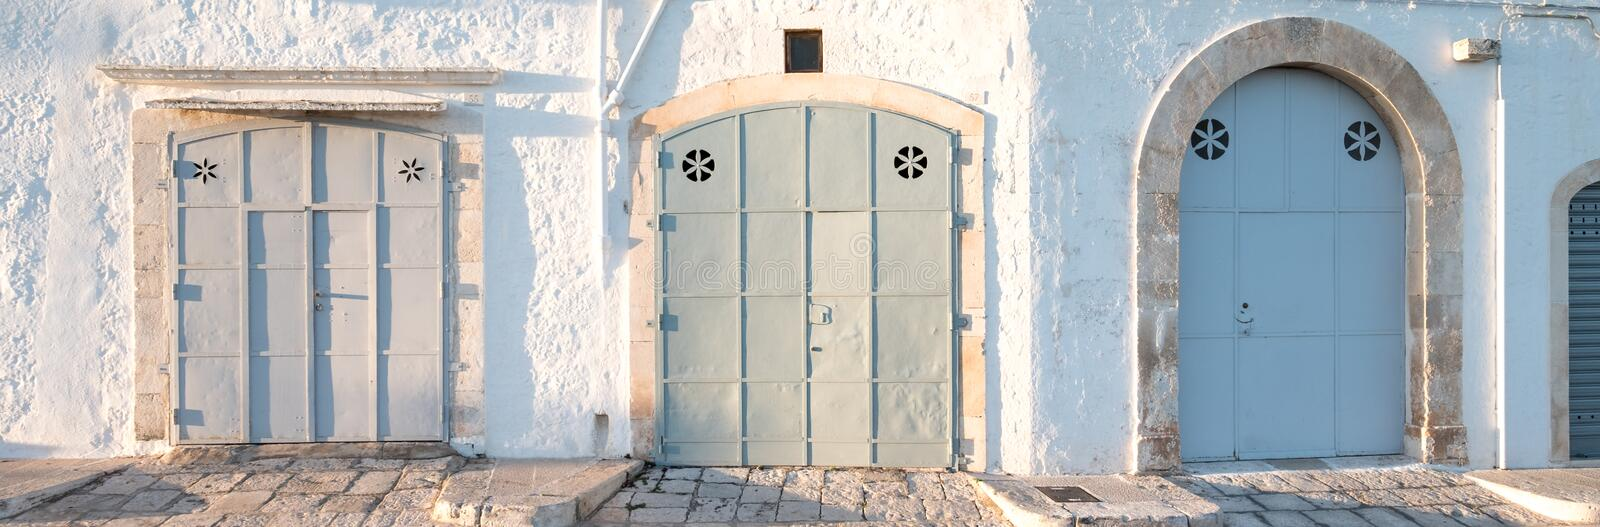 Locorotondo, Puglia, Southern Italy. Panoramic photo of three wide doors in pastel colours. Locorotondo, Puglia, Southern Italy. Panoramic photo of three wide stock photo